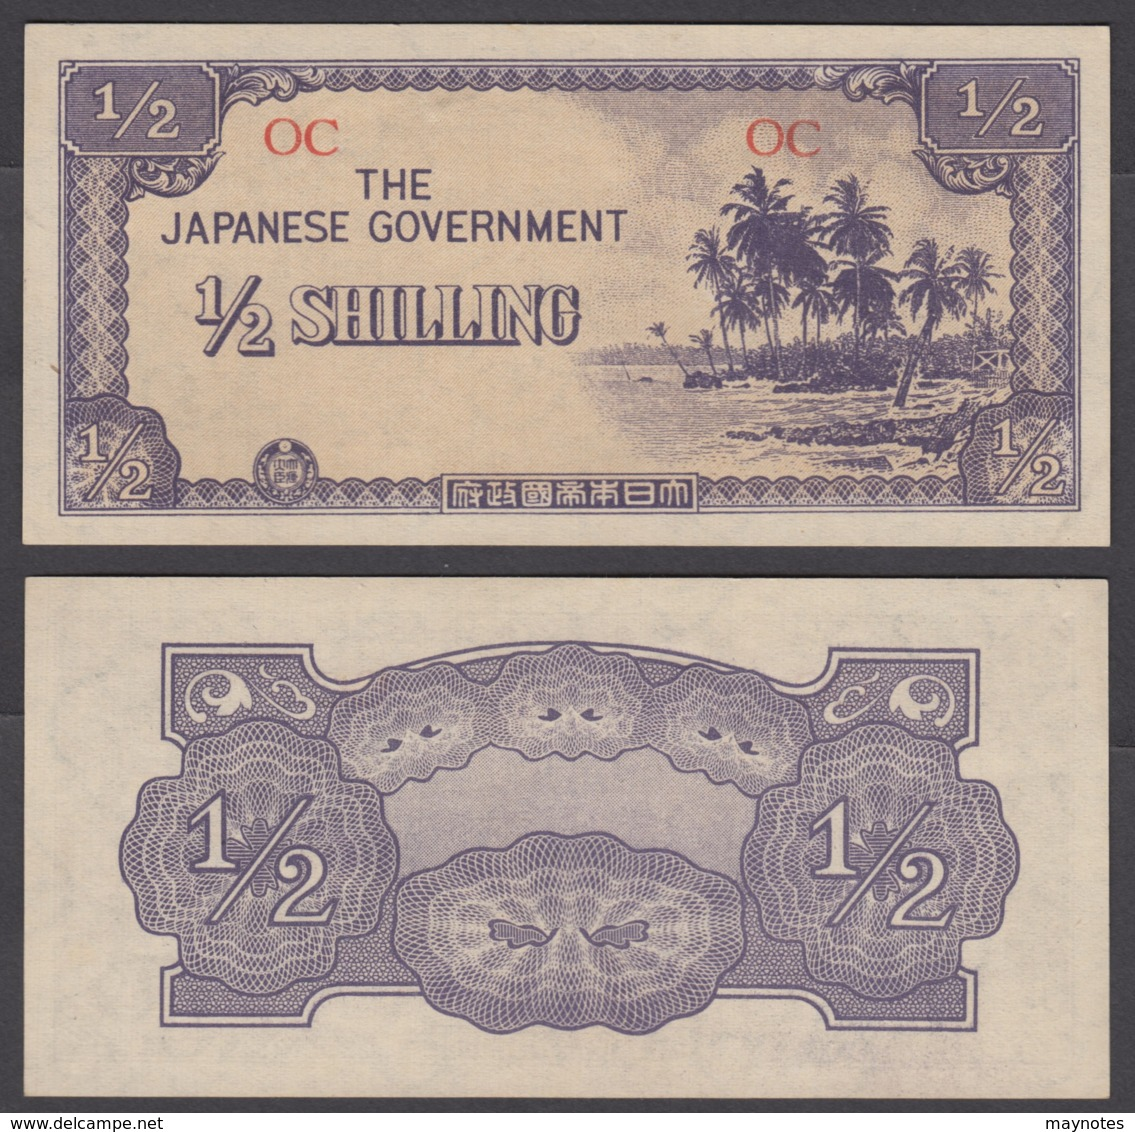 Oceania 1/2 Shilling ND 1942 UNC CRISP Banknote Japanese Occ. WWII P-1 - Banknotes